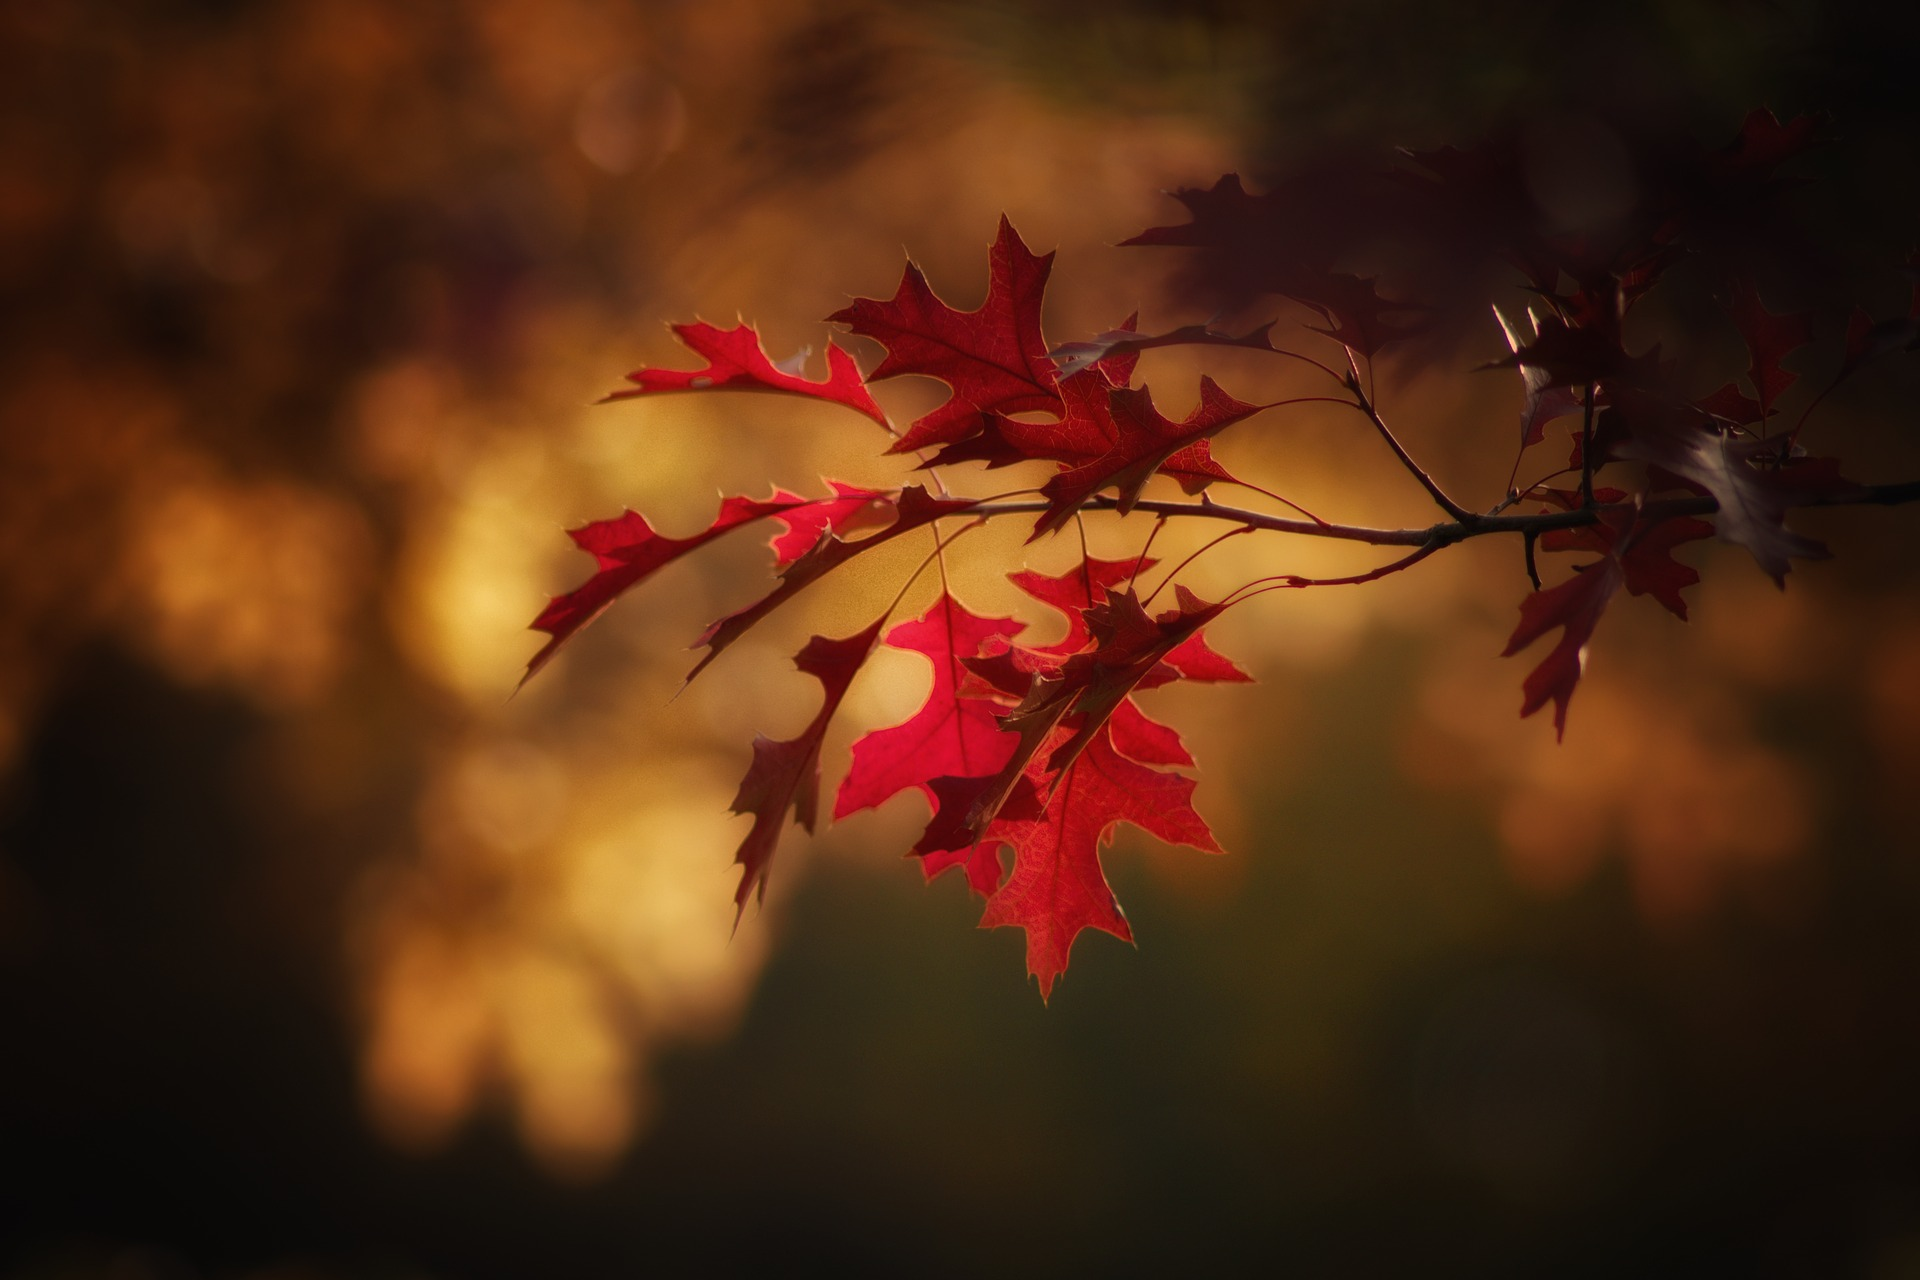 red fall leaves, on a small thin branch, seen in close up, thanksgiving greetings, blurry brown background